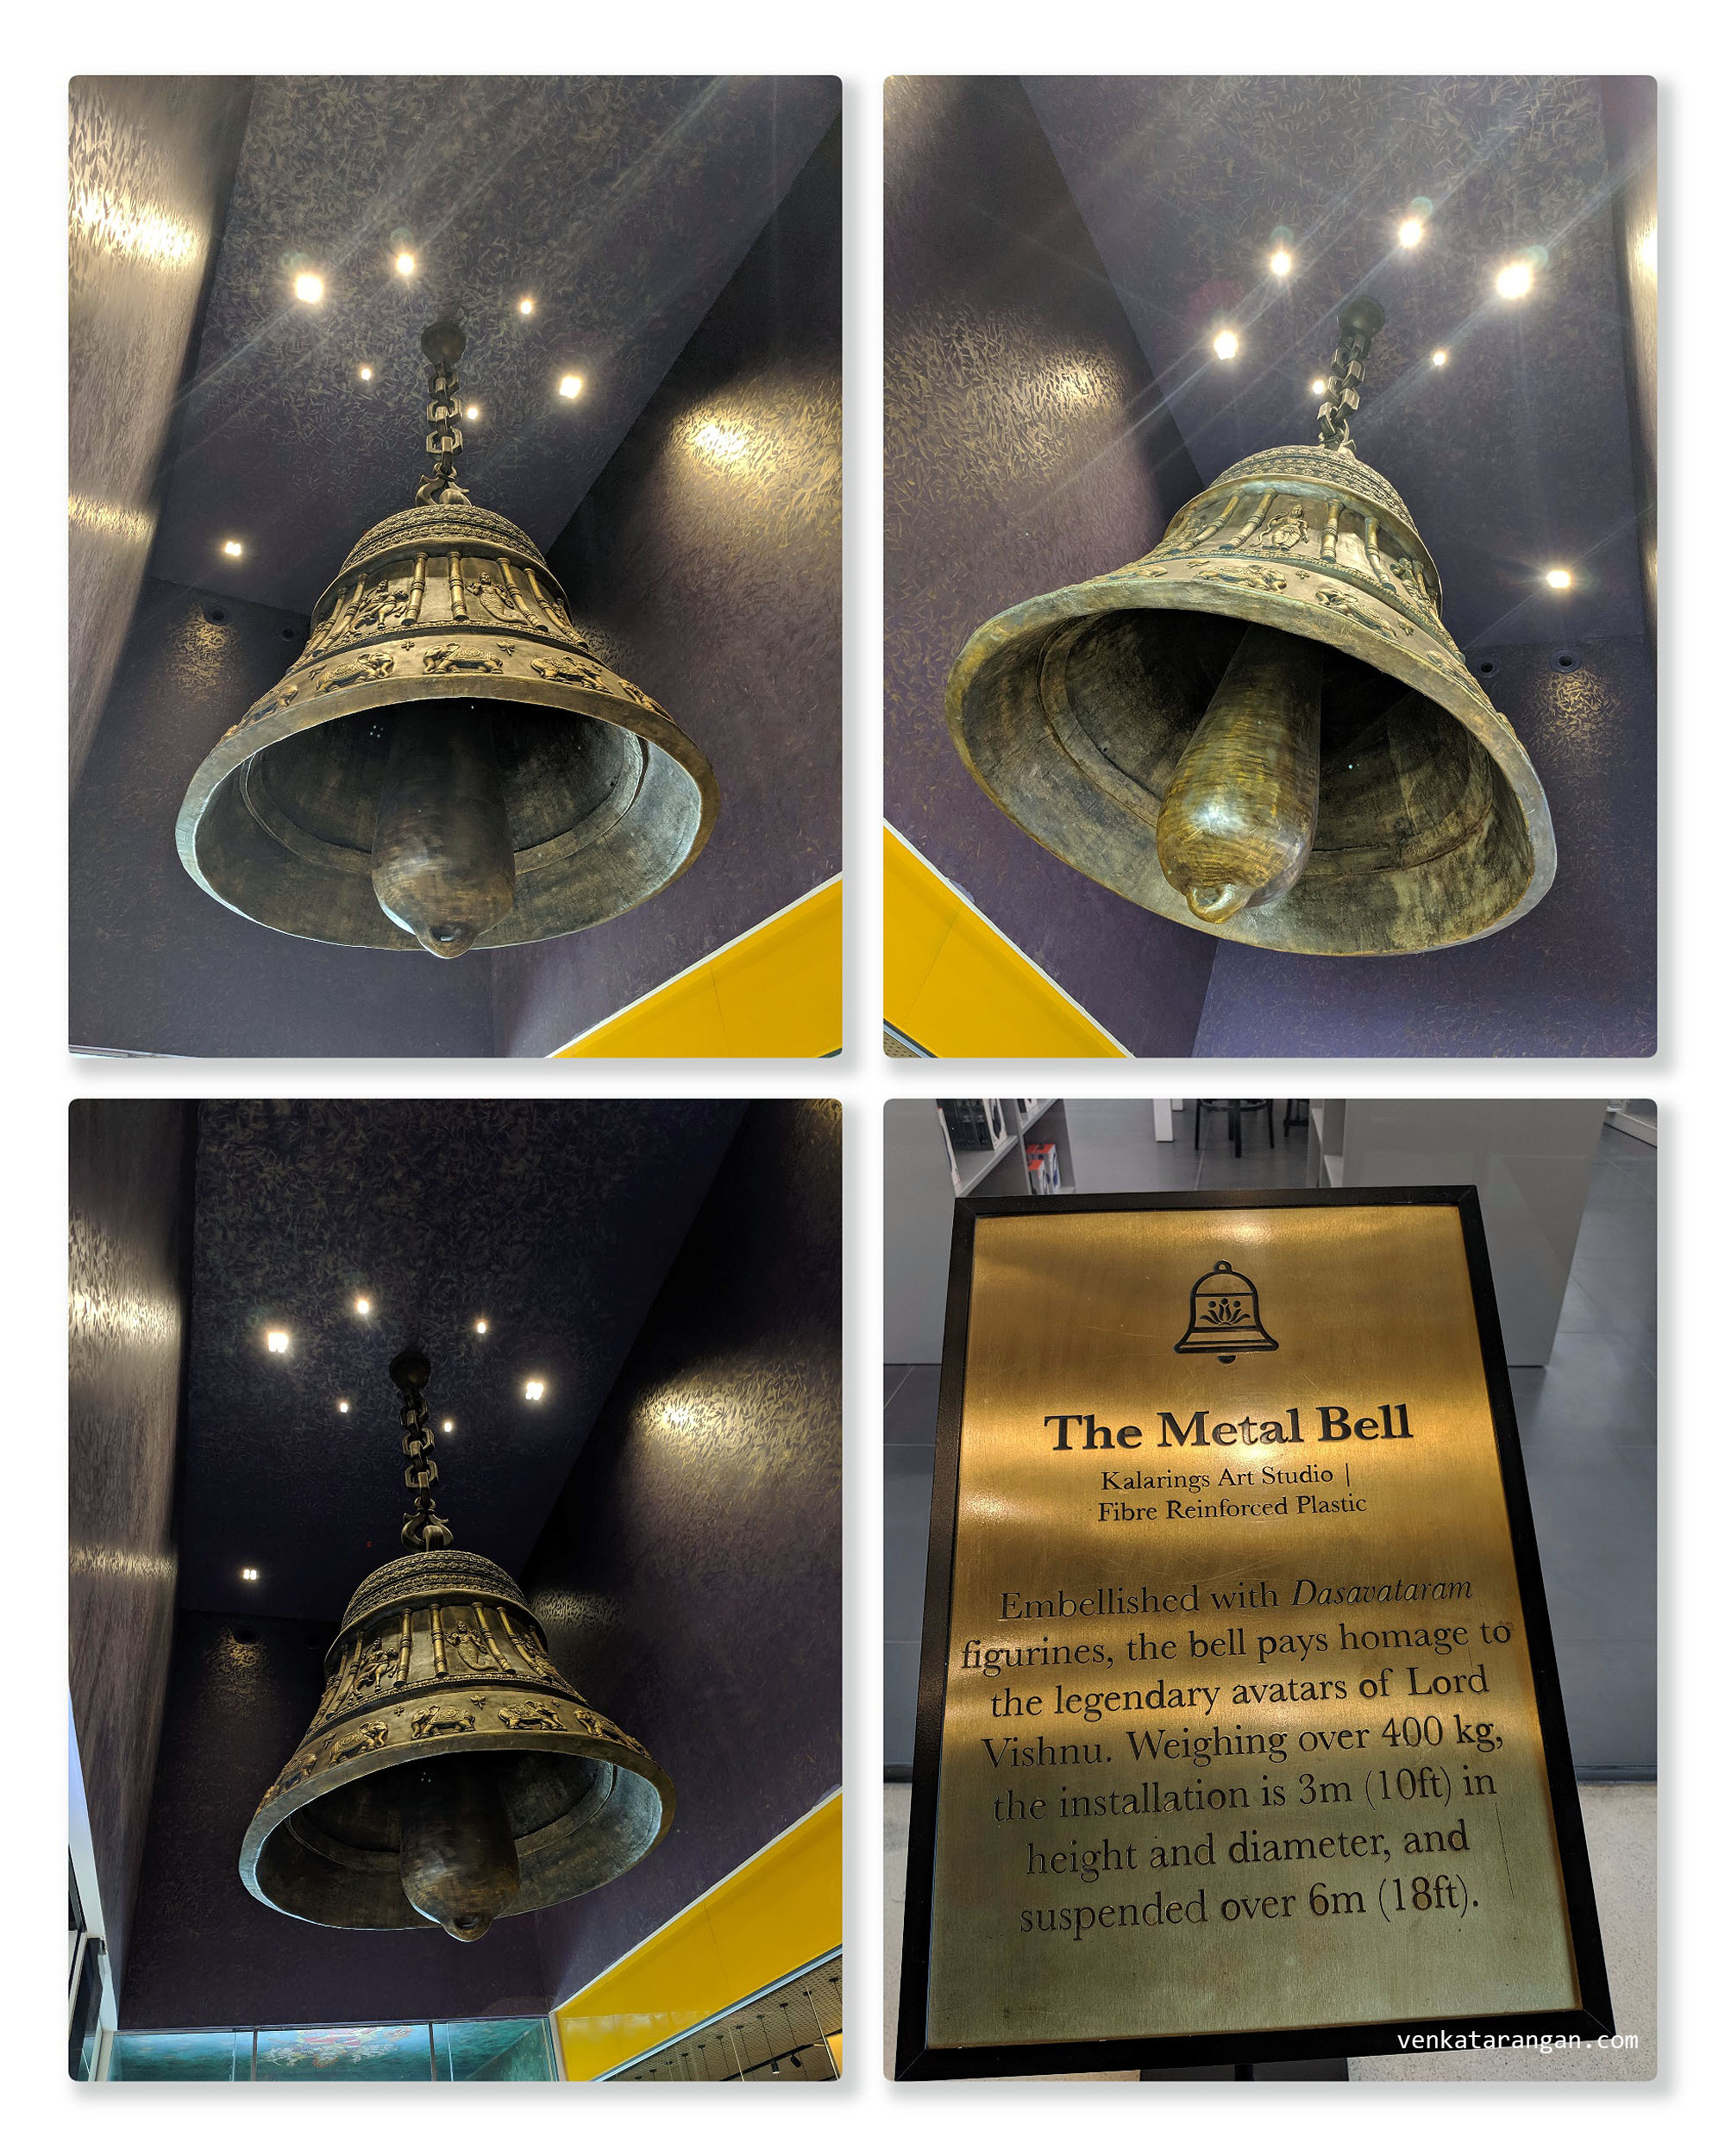 Next stop was The Metal Bell weighing over 400 kg and over 10 feet in height and diameter, is embellished with the hall of dasavatharam figurines